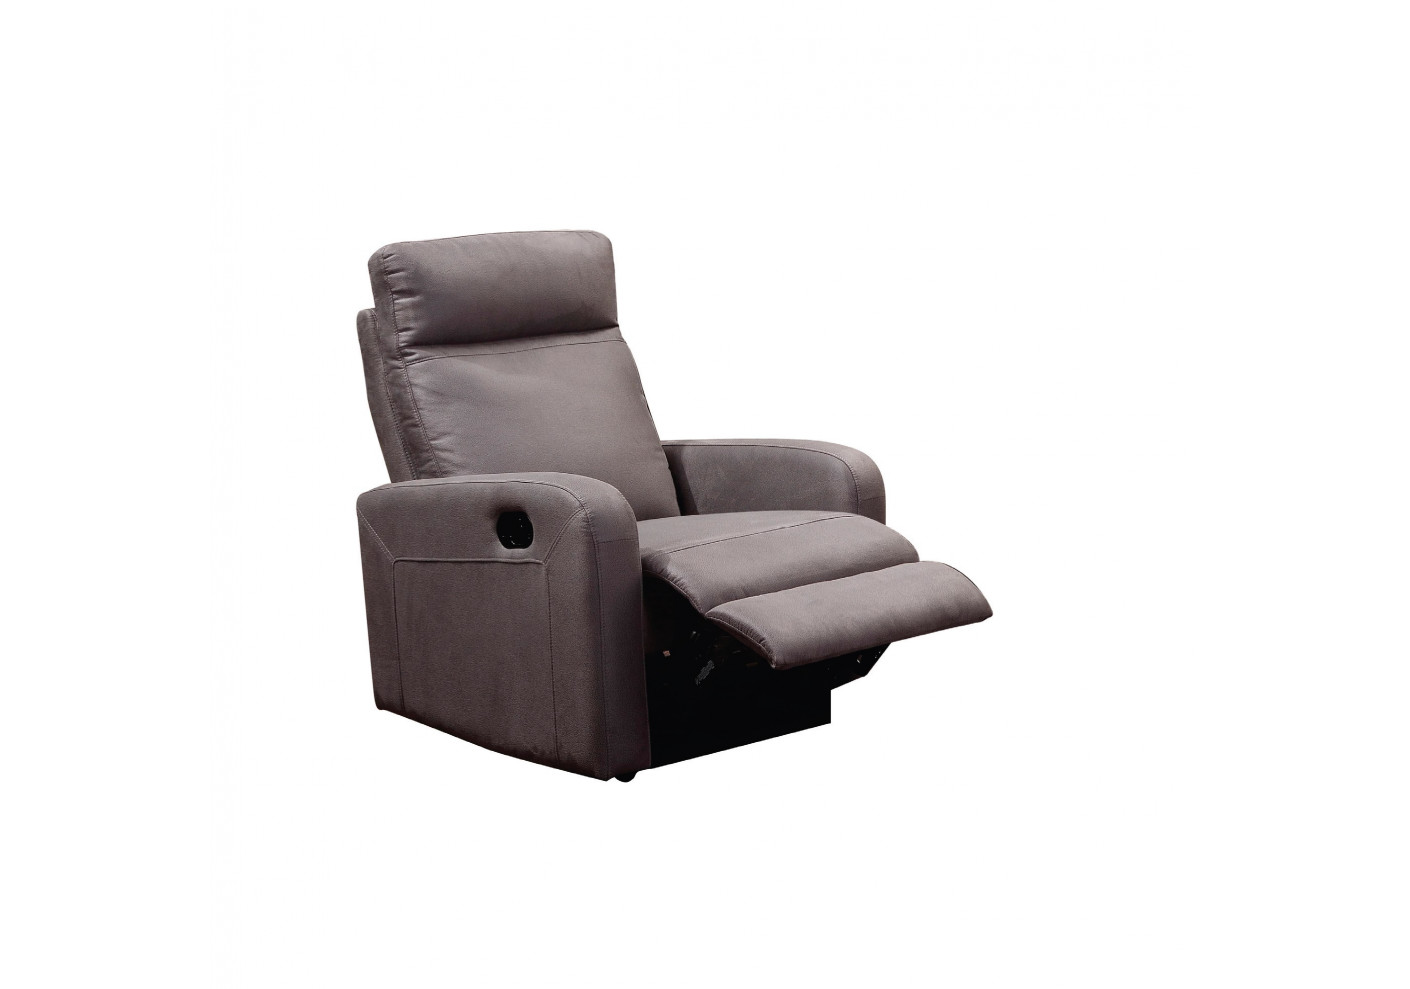 Fauteuil Relax 1 Place Fauteuil Relax Bergame Tissu Gris